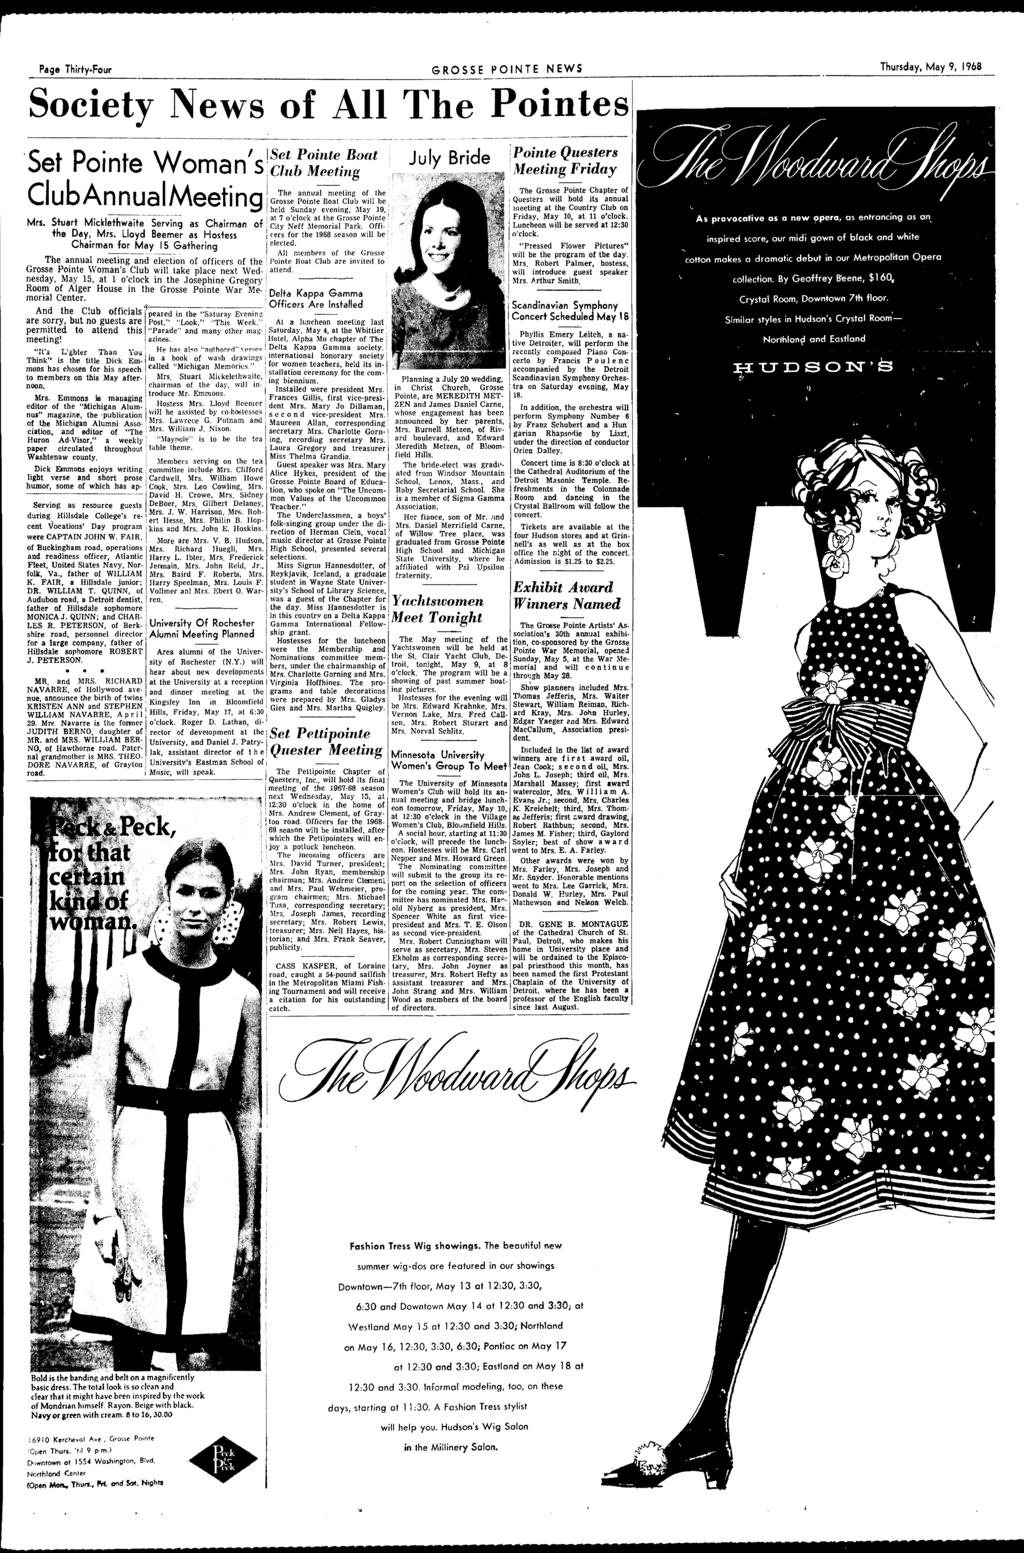 Page Thirty-Four GROSSE PONTE NEWS Thursday, May 9, 1968 Society News of